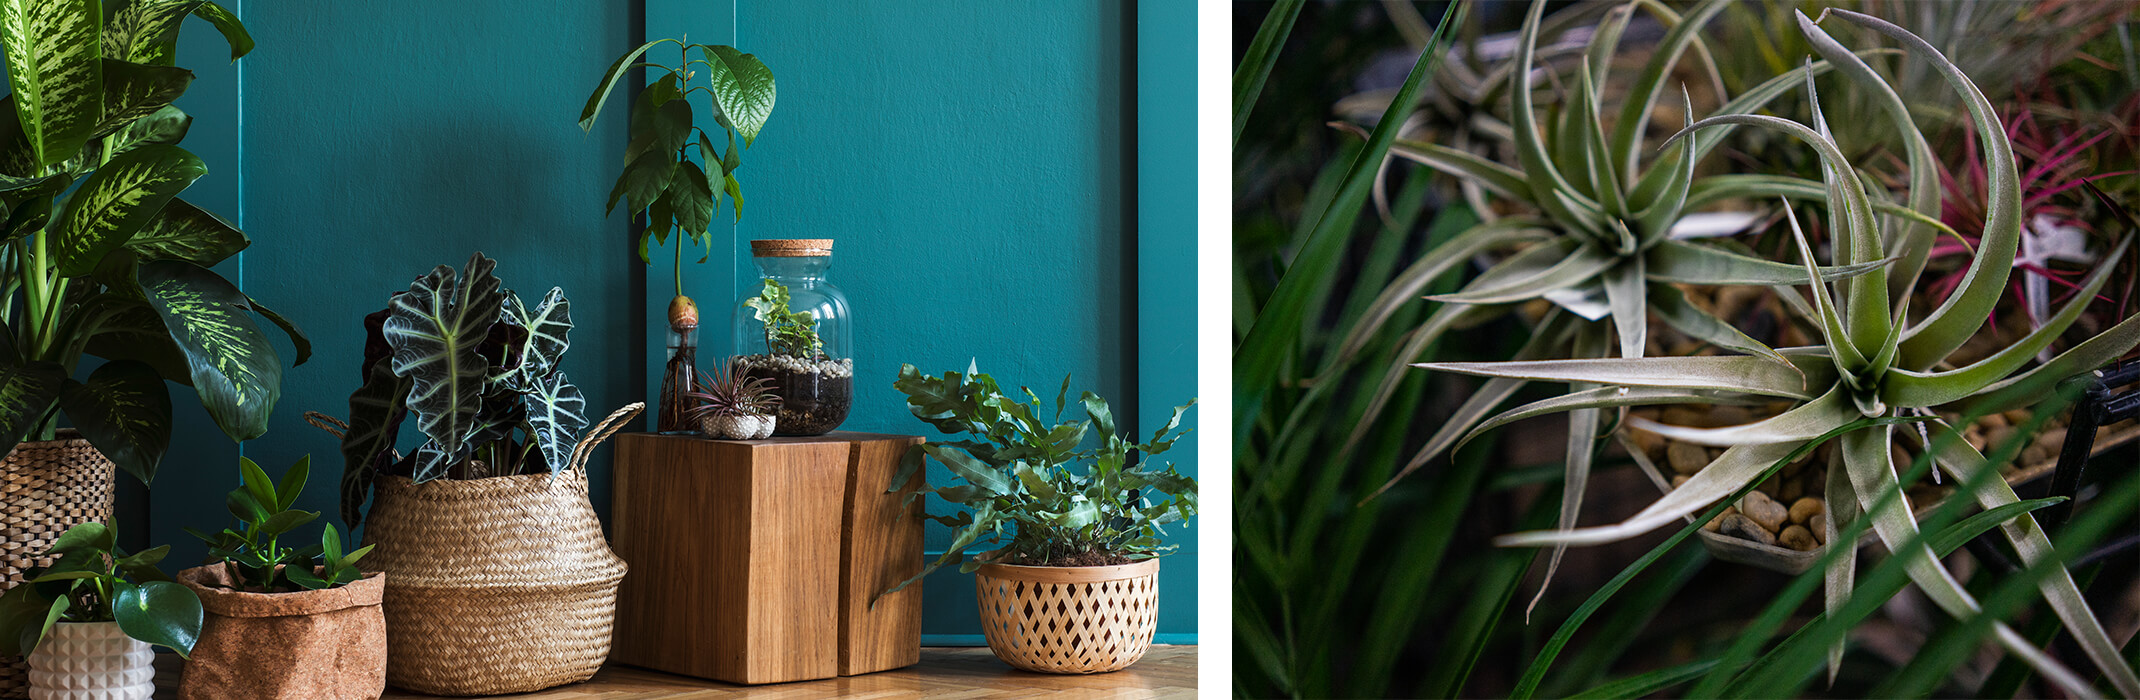 2 houseplant images: left - a vareity of houseplants against a deep teal blue wall; right - a closeup of tillandsias and a palm houseplant